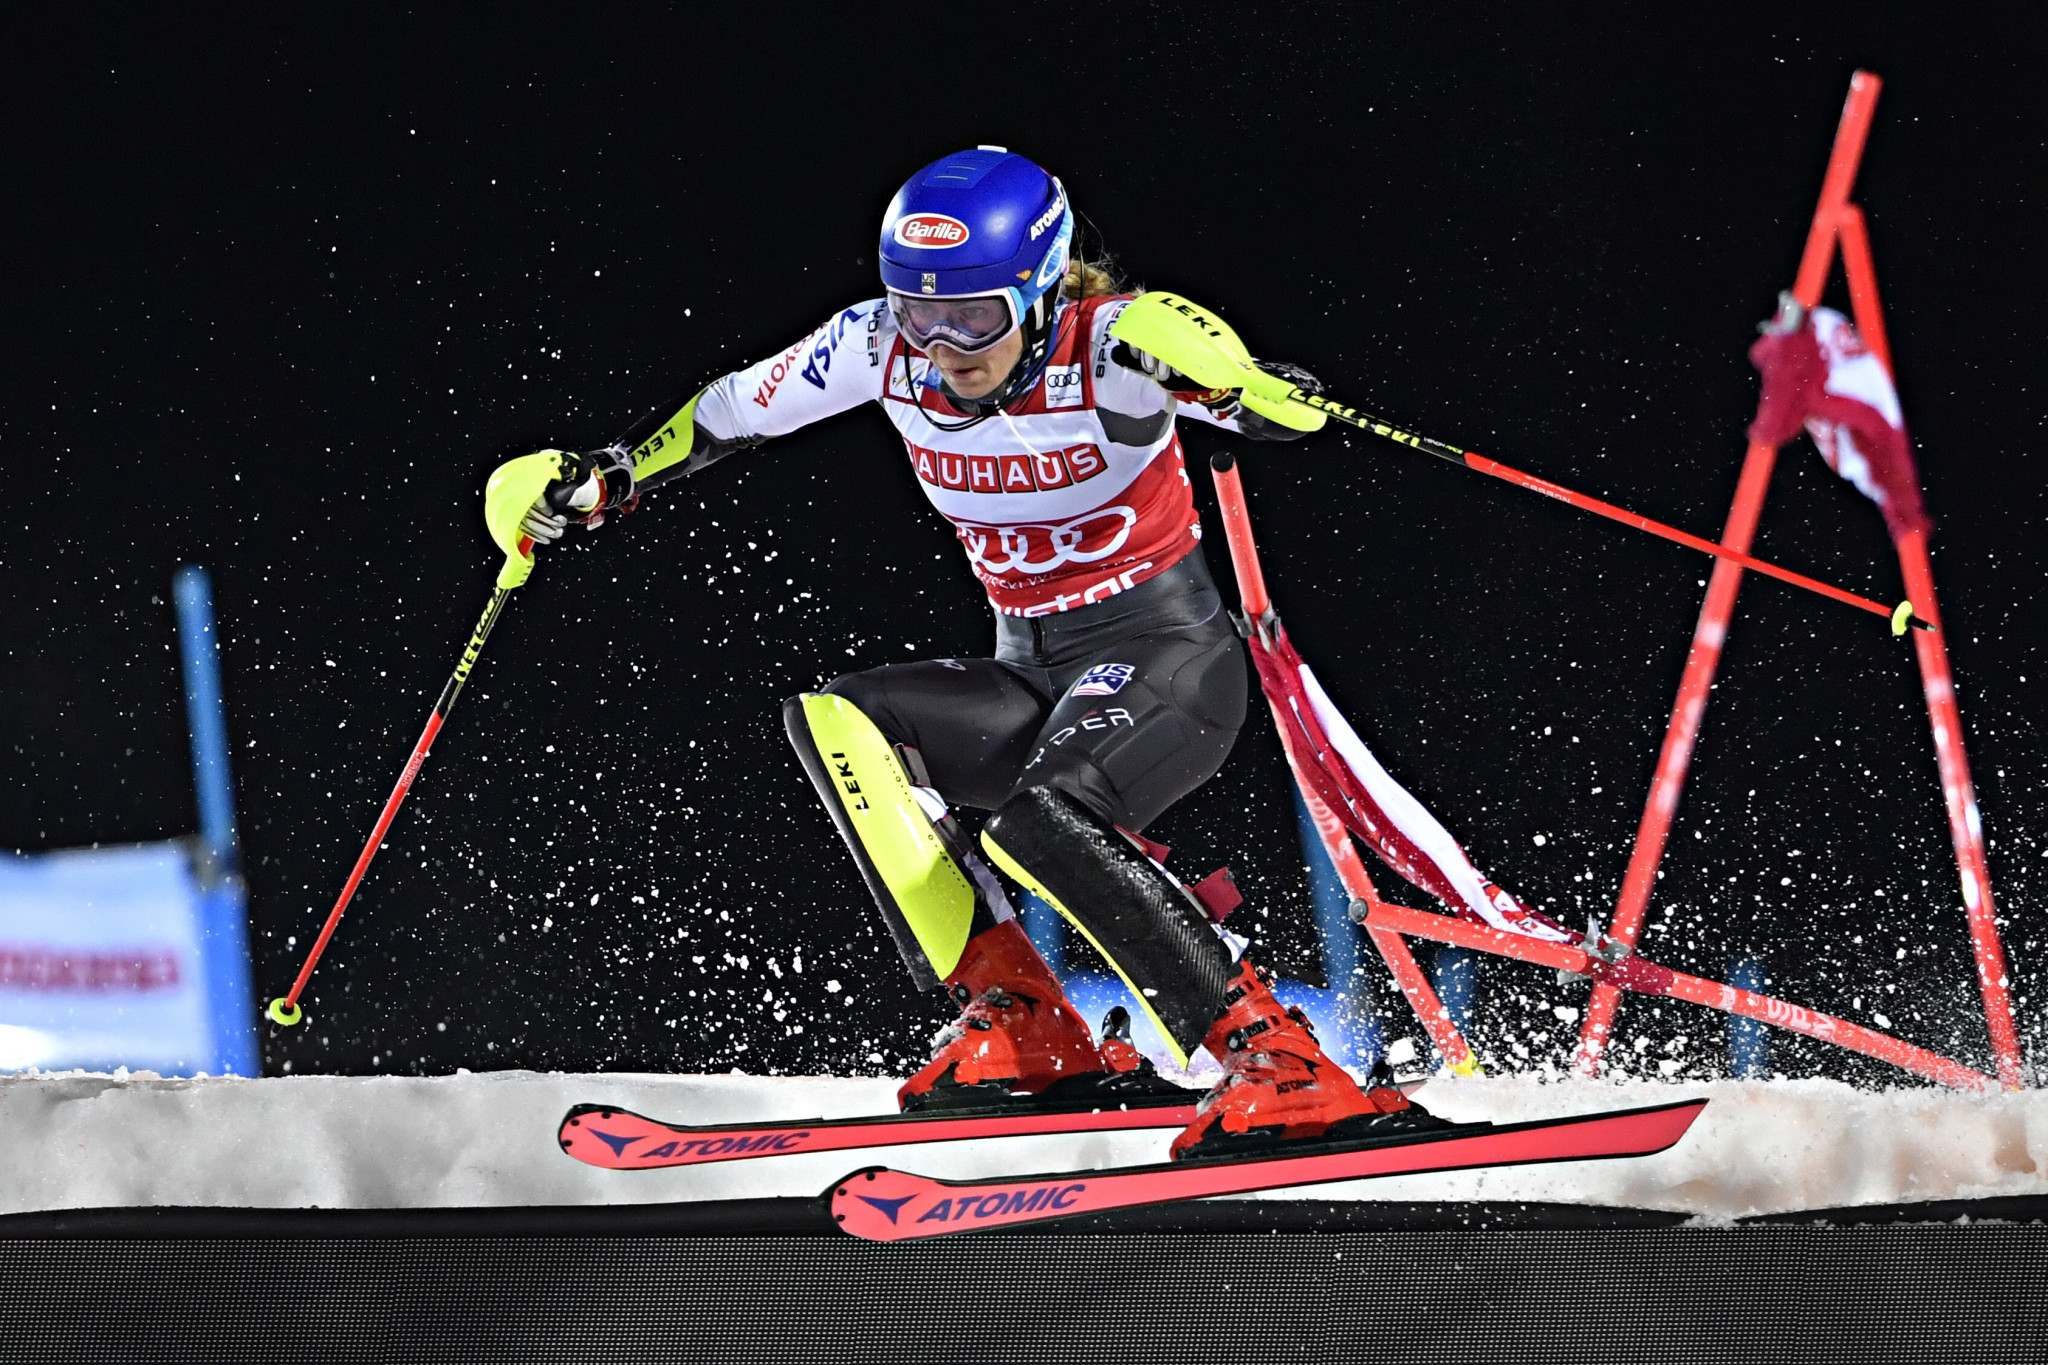 World champion Shiffrin shines in slalom again at FIS Alpine Skiing World Cup in Stockholm